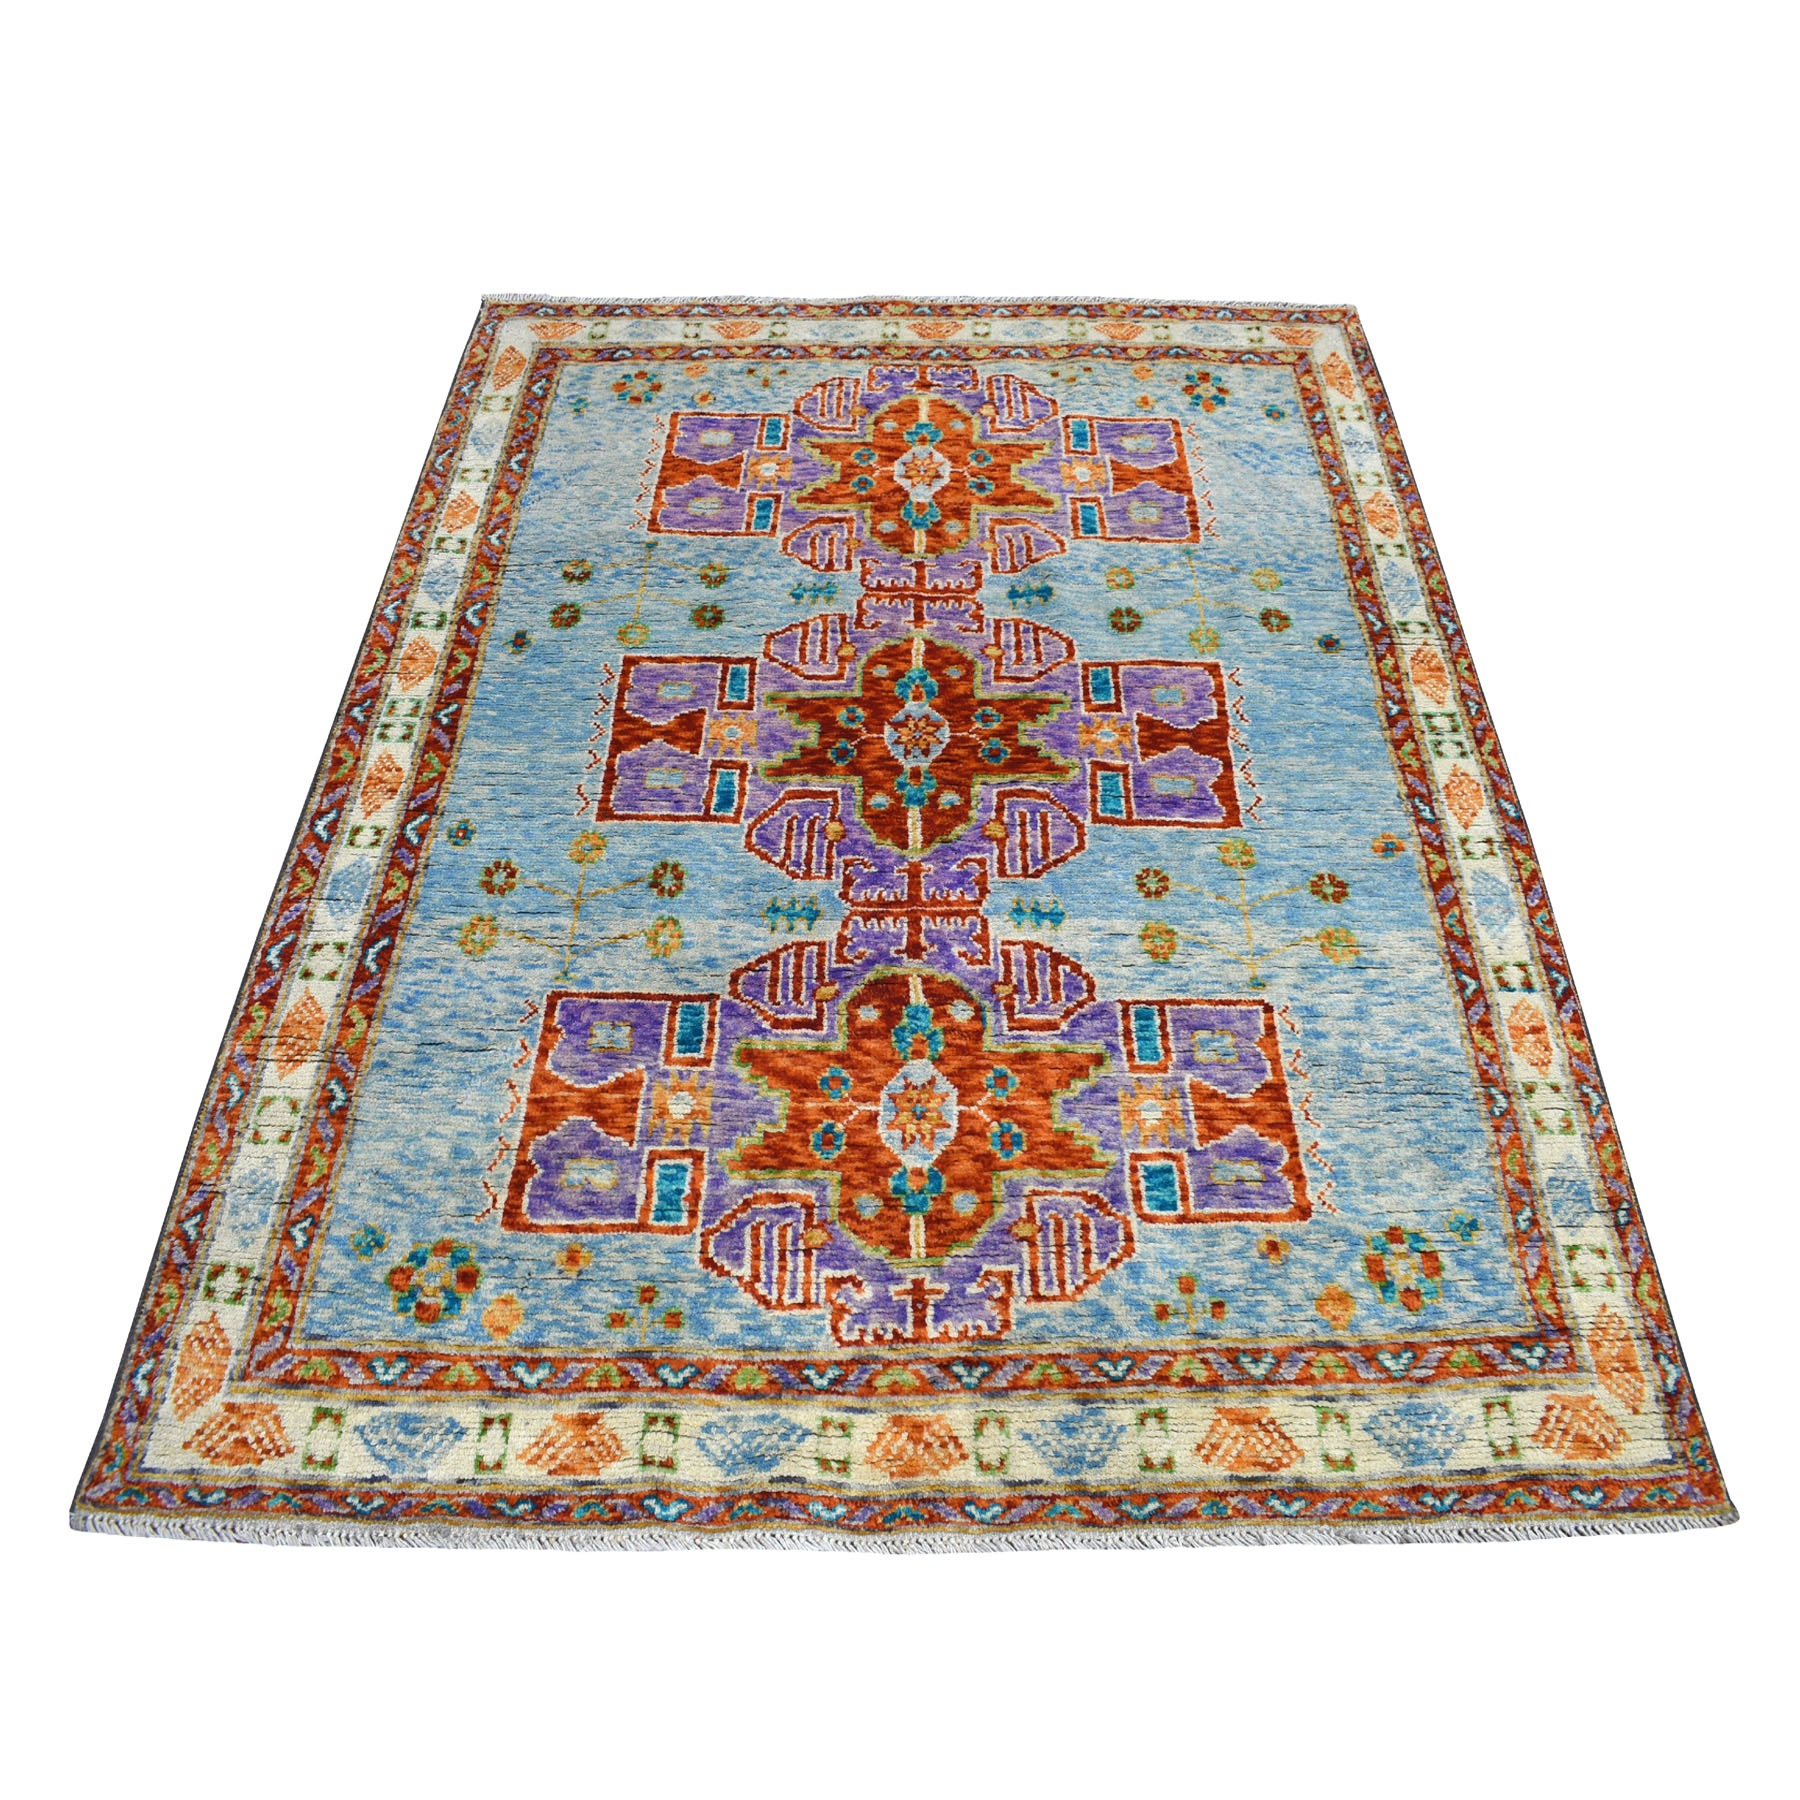 "5'1""x6'5"" Natural Dyes Colorful Afghan Baluch Geometric Design Hand Knotted 100% Wool Oriental Rug"